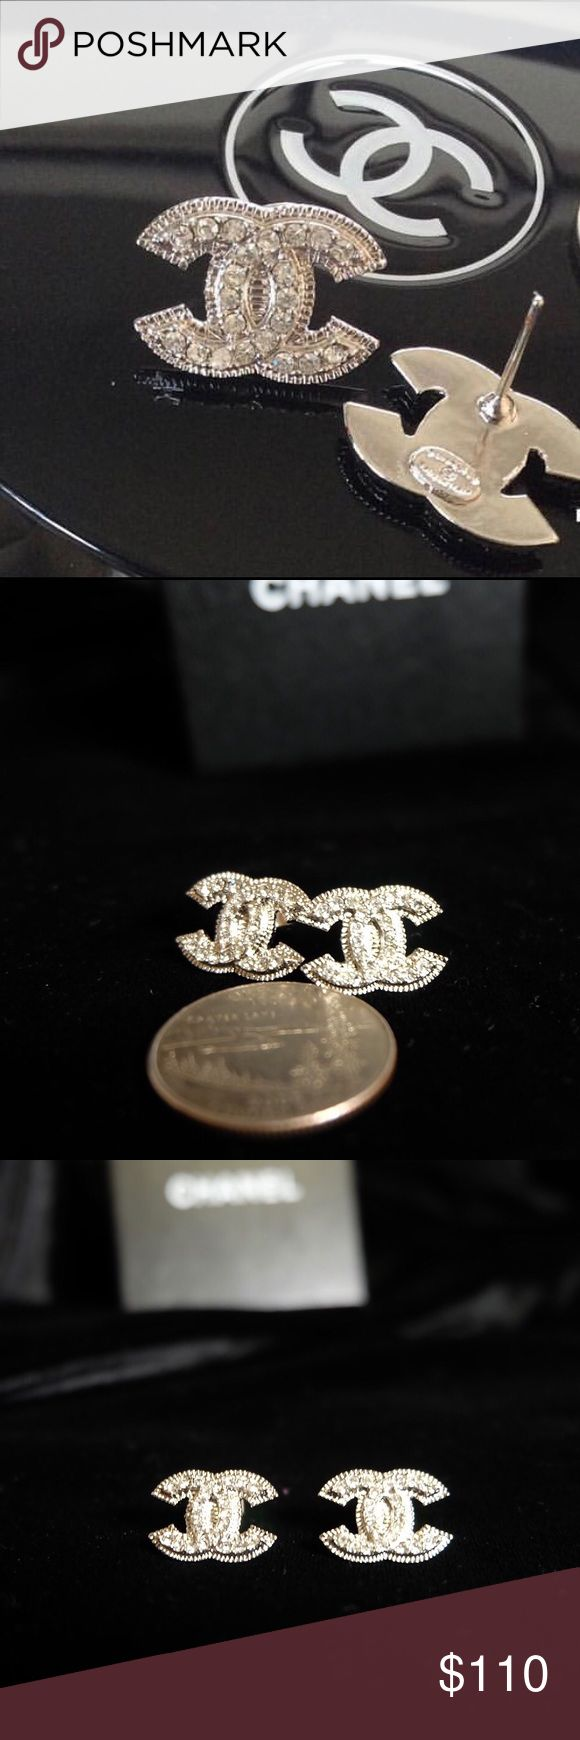 CC CZ Women stud Earrings Hot Fashion ‼️PLEASE READ ITEM DESCRIPTIONS & SEE PHOTOS BEFORE PURCHASING ‼️  💎In_s.p.i.r.ed 💎CZ (Cubic Zirconia)  💎Stamps on the back  💎High Quality 💎The pictured item is the exact item you will receive  💎No Trade No Low offers Pleaseee 💎Same Day Shipping if Purchase before 1PM 😊THANK YOU😊 CHANEL Jewelry Earrings